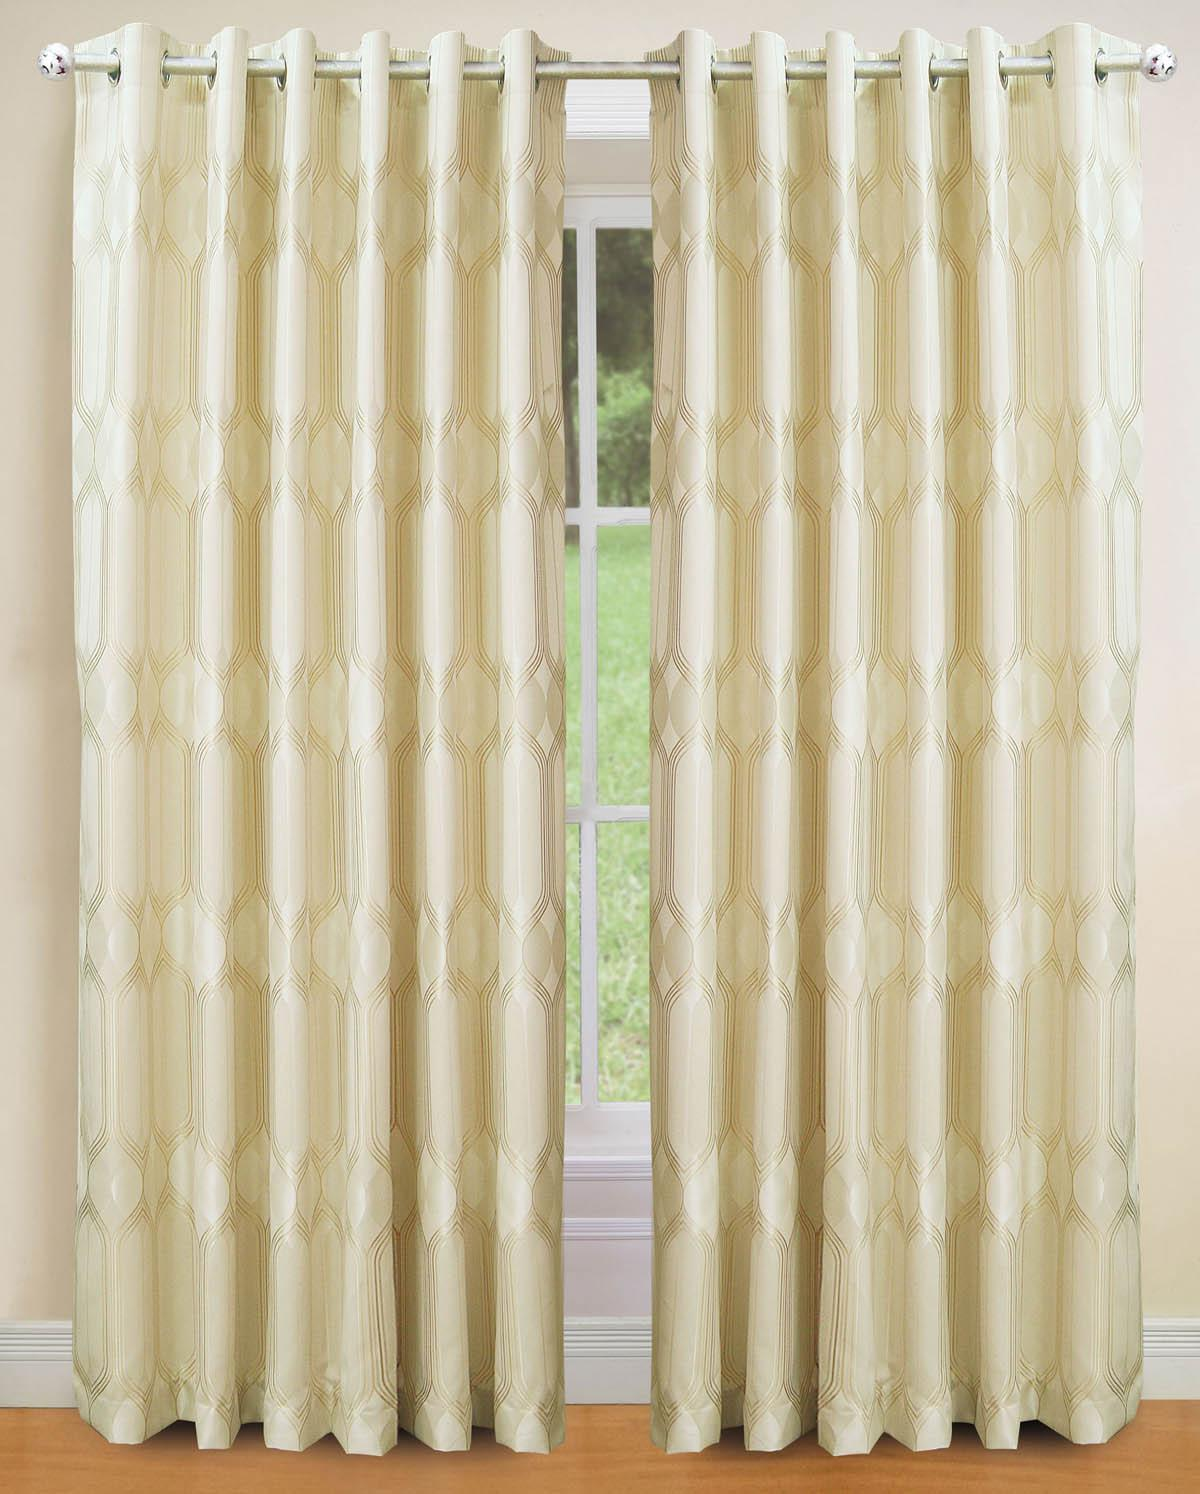 Buy cheap eyelet curtains compare curtains blinds for Best place to buy fabric for curtains